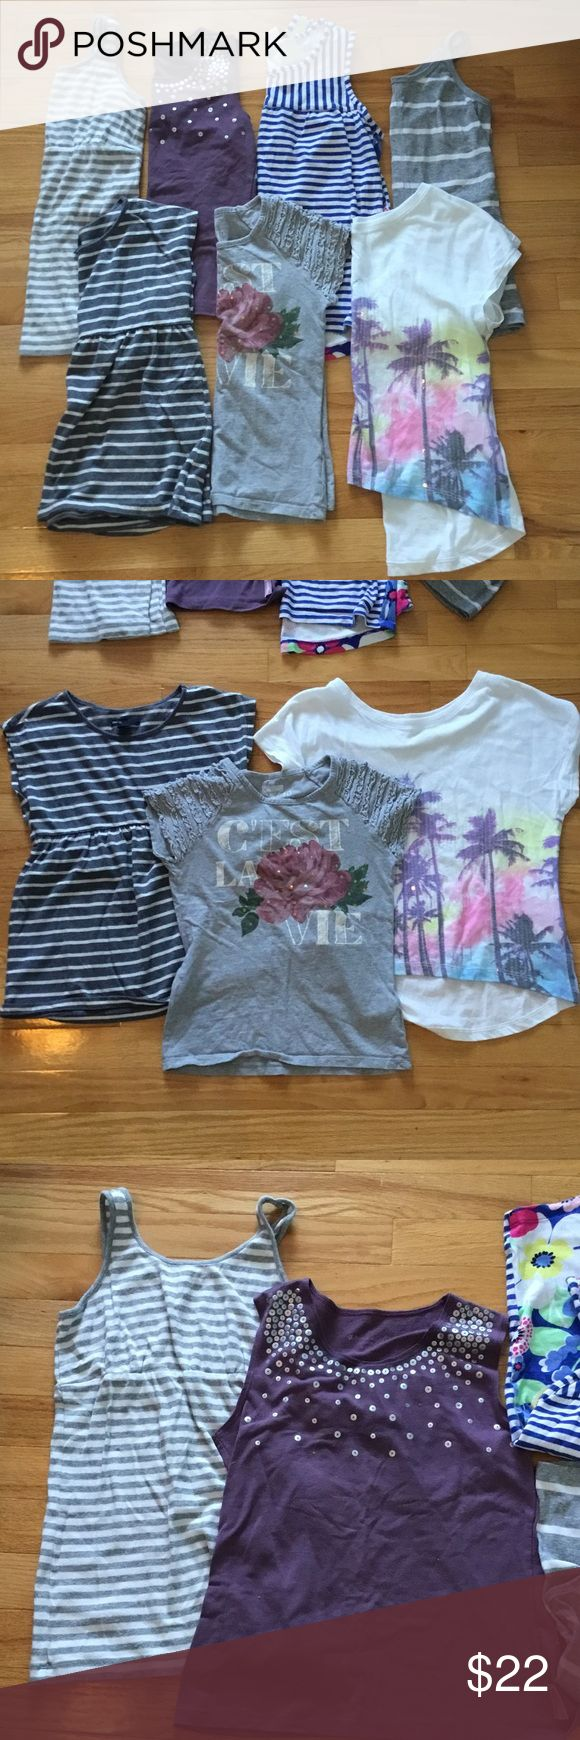 Gap, Gymboree, American Girl Tops Lot American Girl purple tank size 10/12. Gymboree blue striped tank with Floral back size 10-12. Old Navy gray/white striped spaghetti strap tank size 10/12. Osh Kosh gray C'est La Vie Gray Top size 10. GapKids gray/white striped Shirt Sleeve top size 10. GapKids striped tank size XL (fits like 10). Limited Edition PSNY Palm Tree slouchy Top size 12 (runs small). GAP Shirts & Tops Tees - Short Sleeve